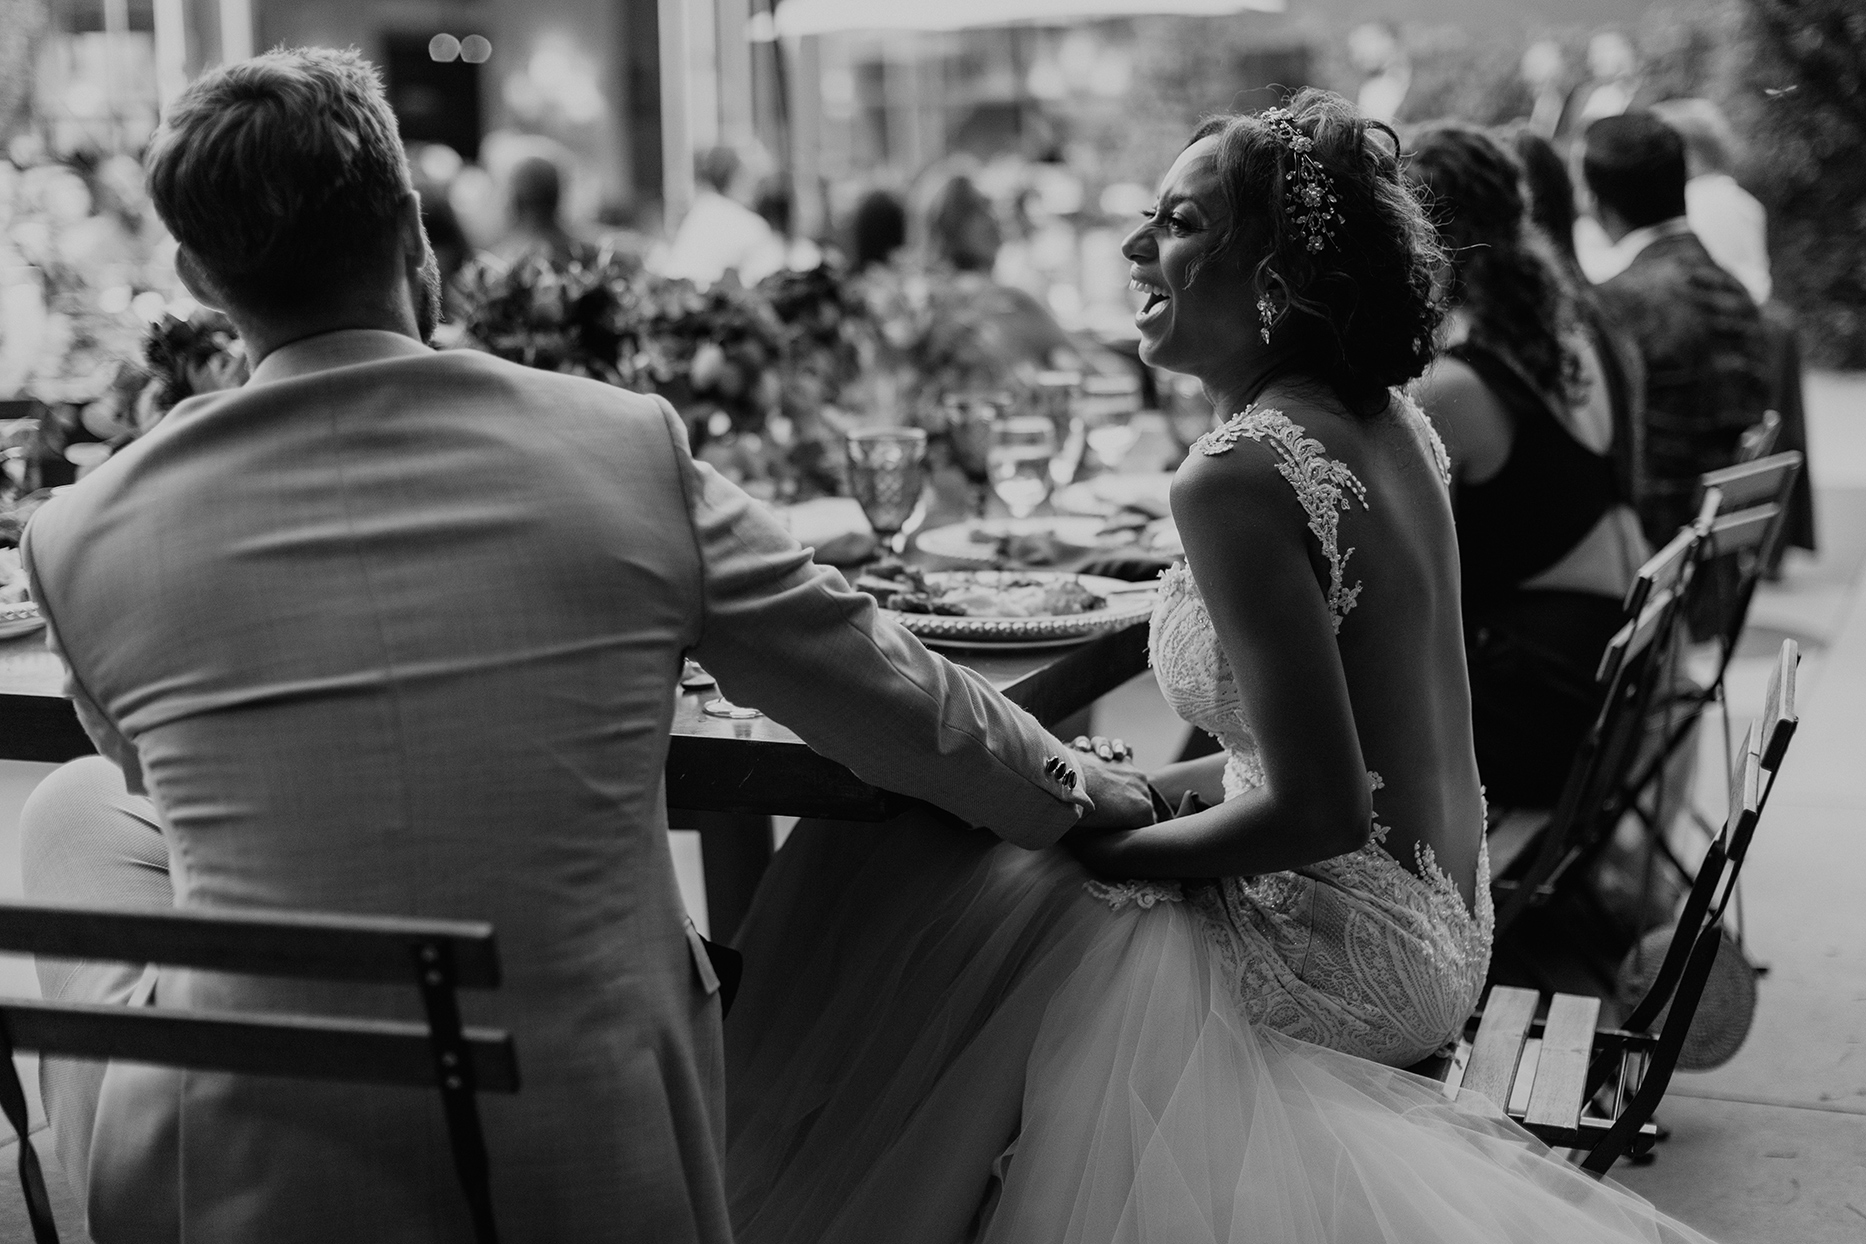 bride and groom holding hands at wedding table during speeches